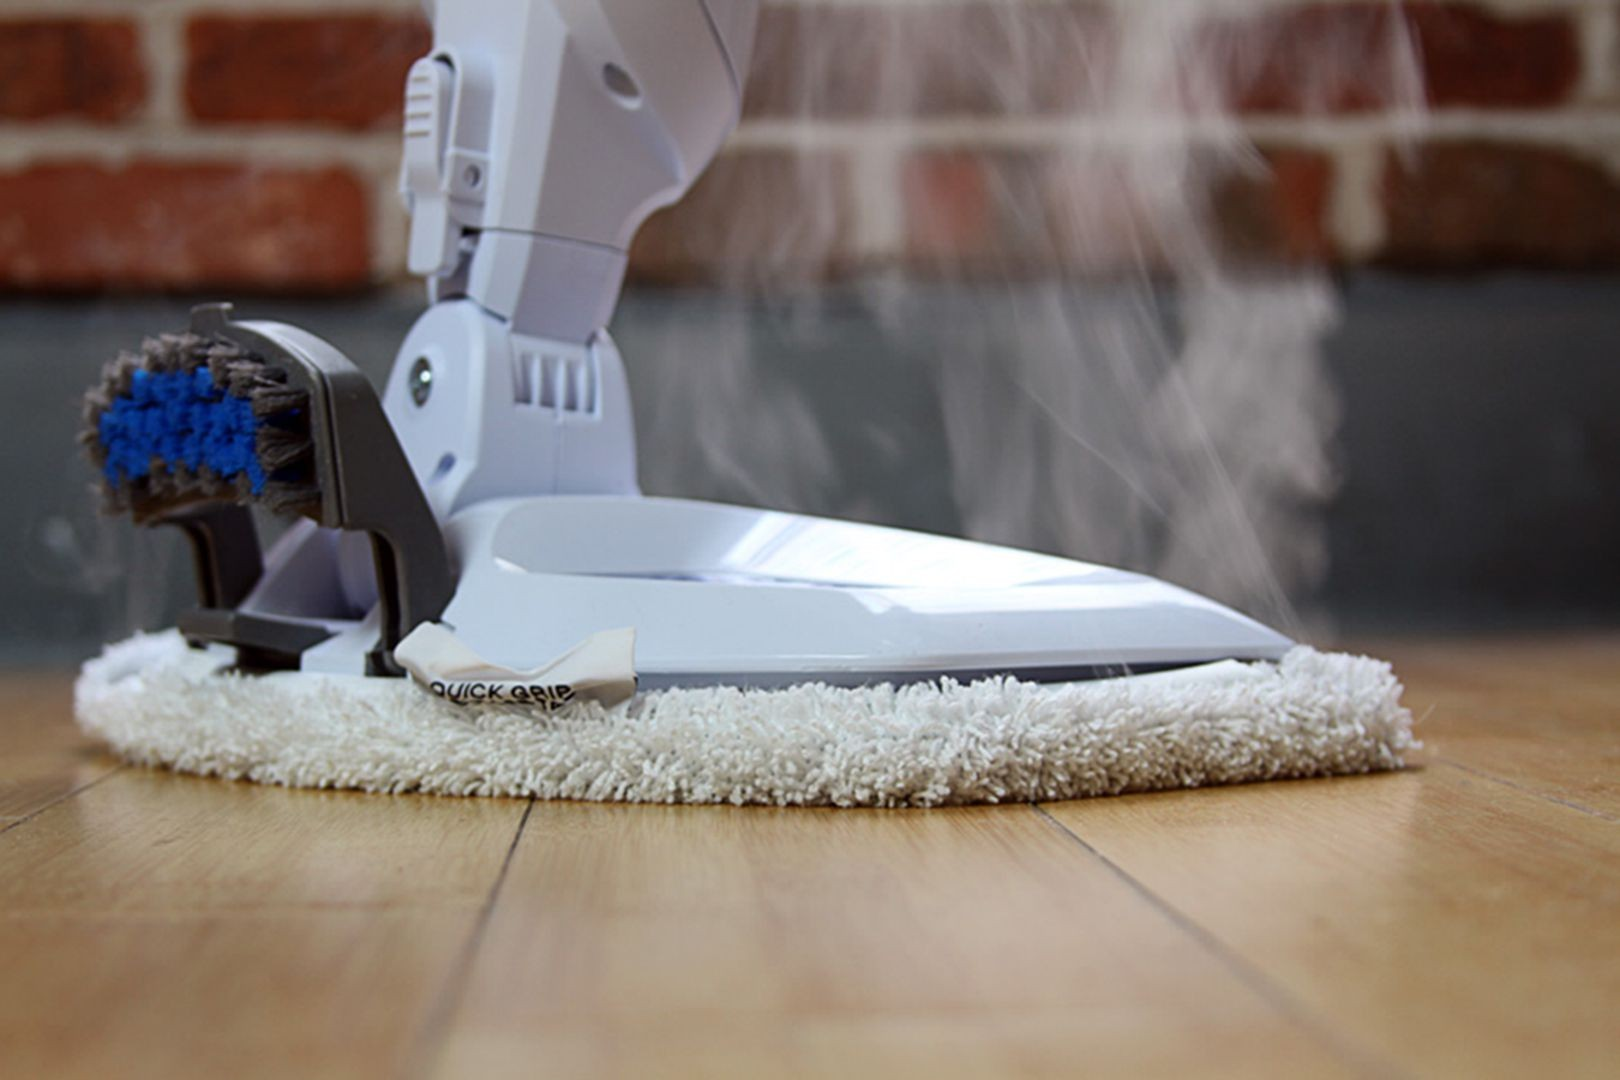 Cleaning Vinyl Floors Using Steam Cleaners